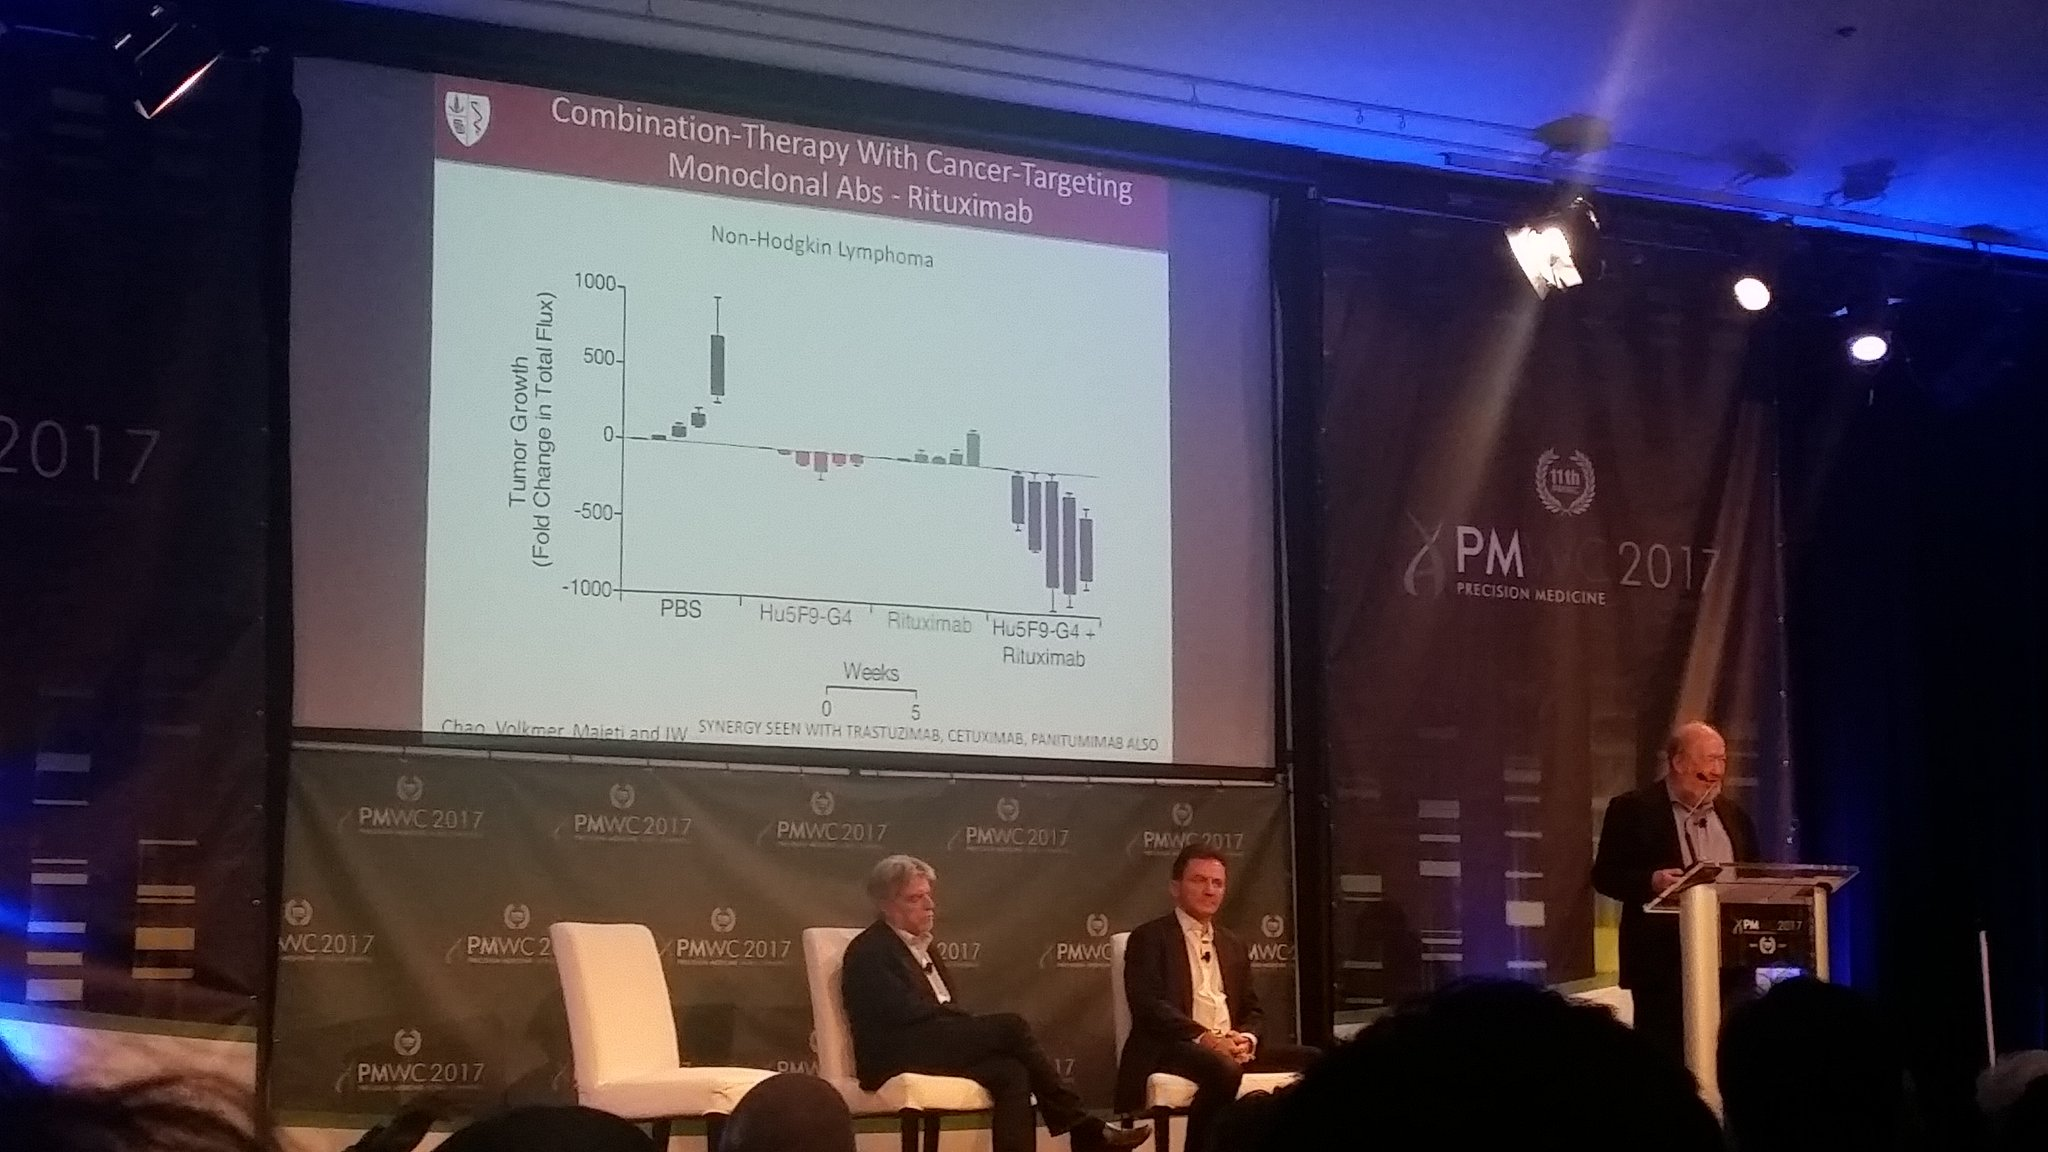 Immunotherapy session at #PMWC17 - first and very interesting talk from dr. Irv Weissman of Stanford School of Medicine https://t.co/W9zr7q66oK